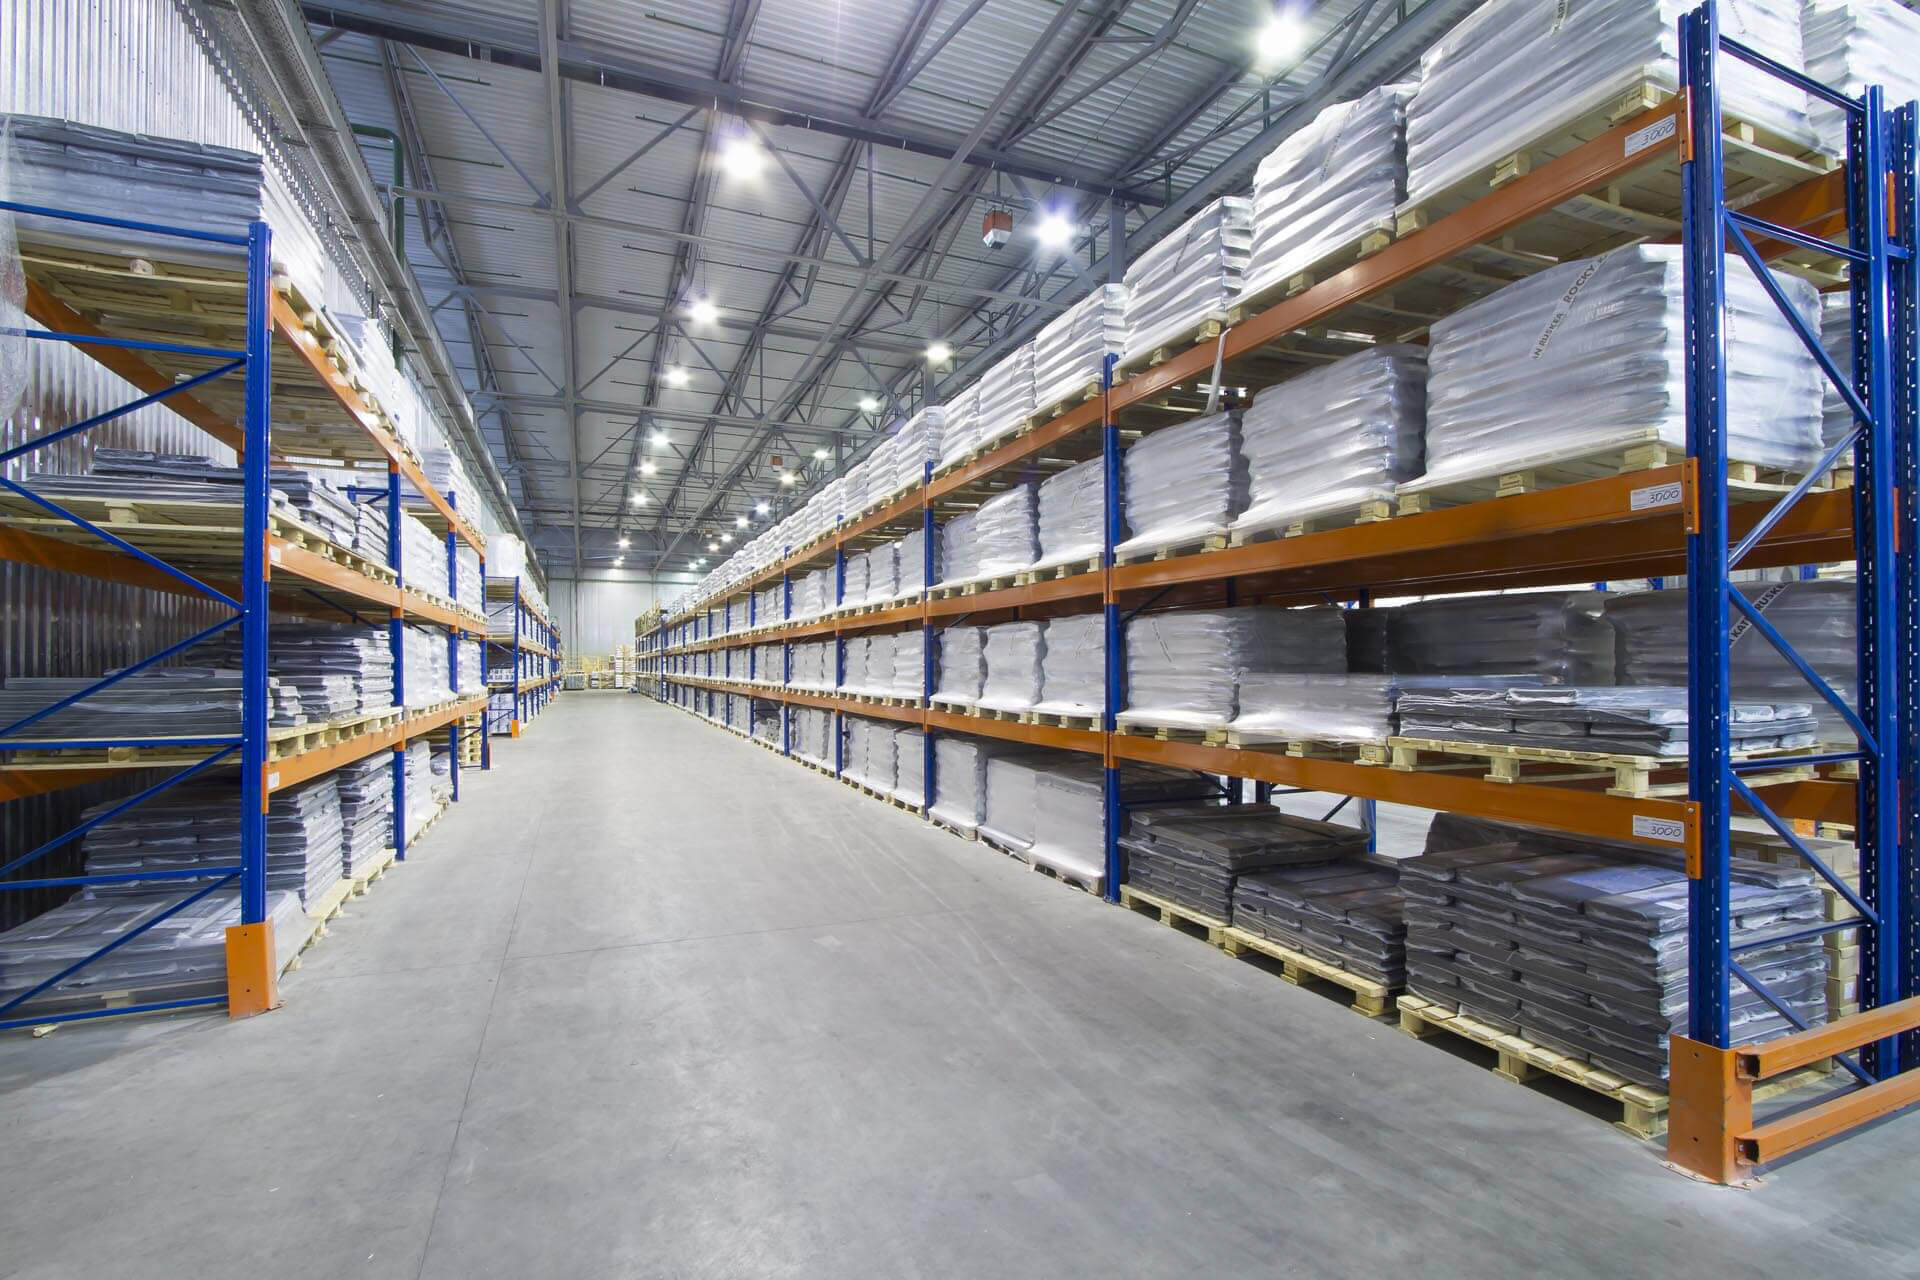 Blue warehouse double height raking system with pallette storage and large aisle width with high bay light fittings on concrete floor.